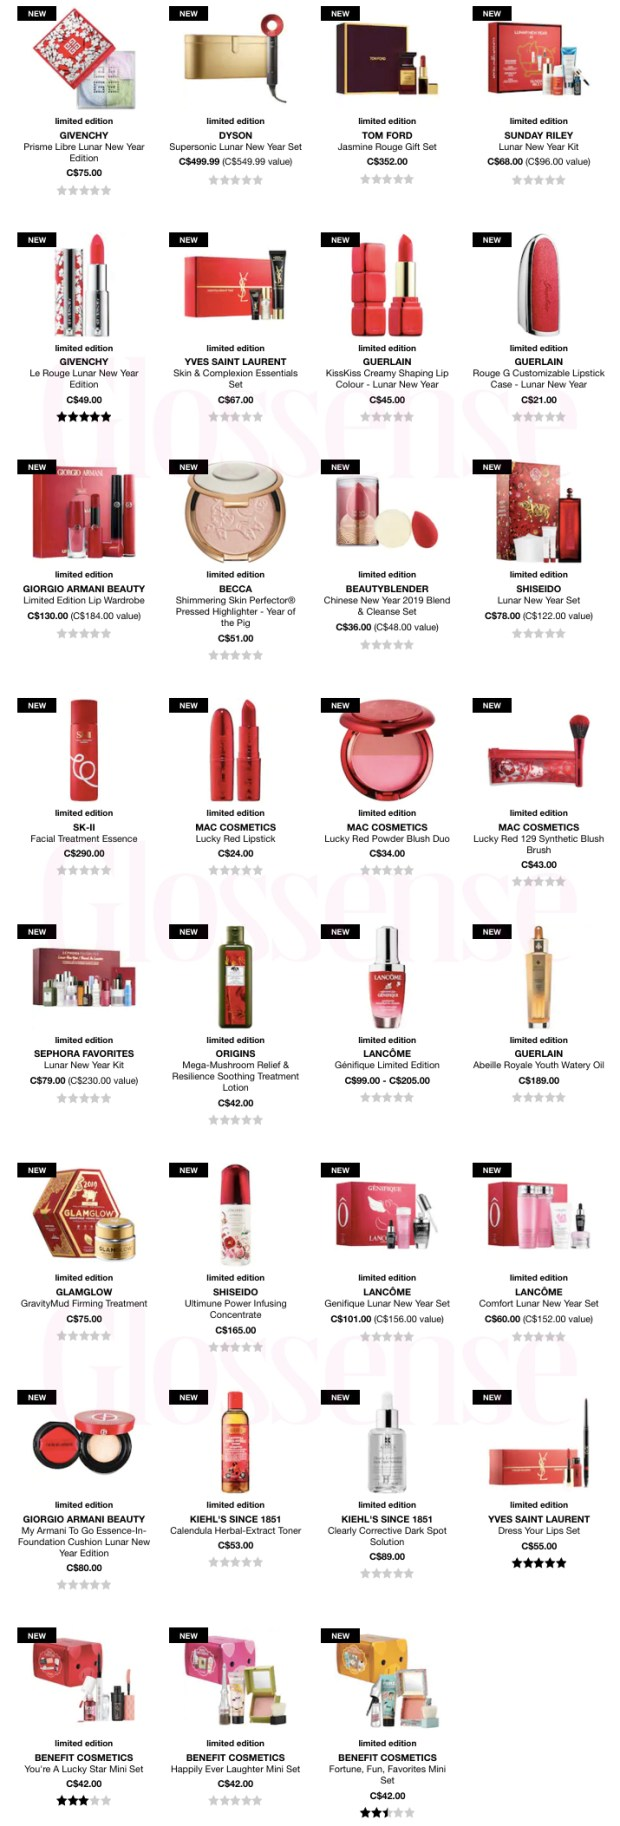 Sephora Canada 2019 Chinese New Year Lunar New Year Items Beauty Products Canadian Deals Celebration Year of the Pig Happiness Luck - Glossense